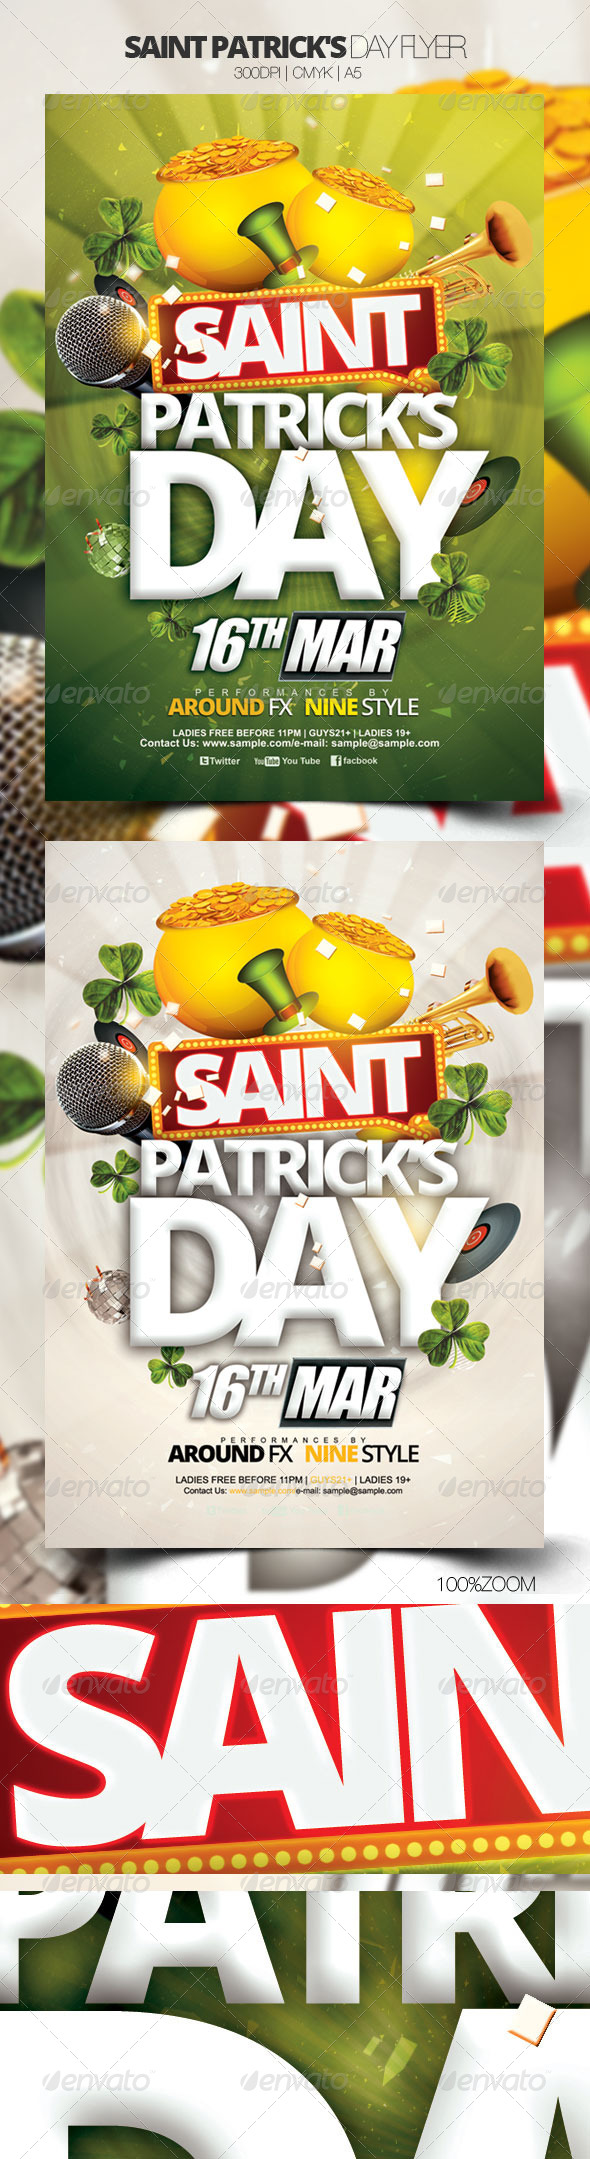 Saint Patrick's Day Flyer - Holidays Events